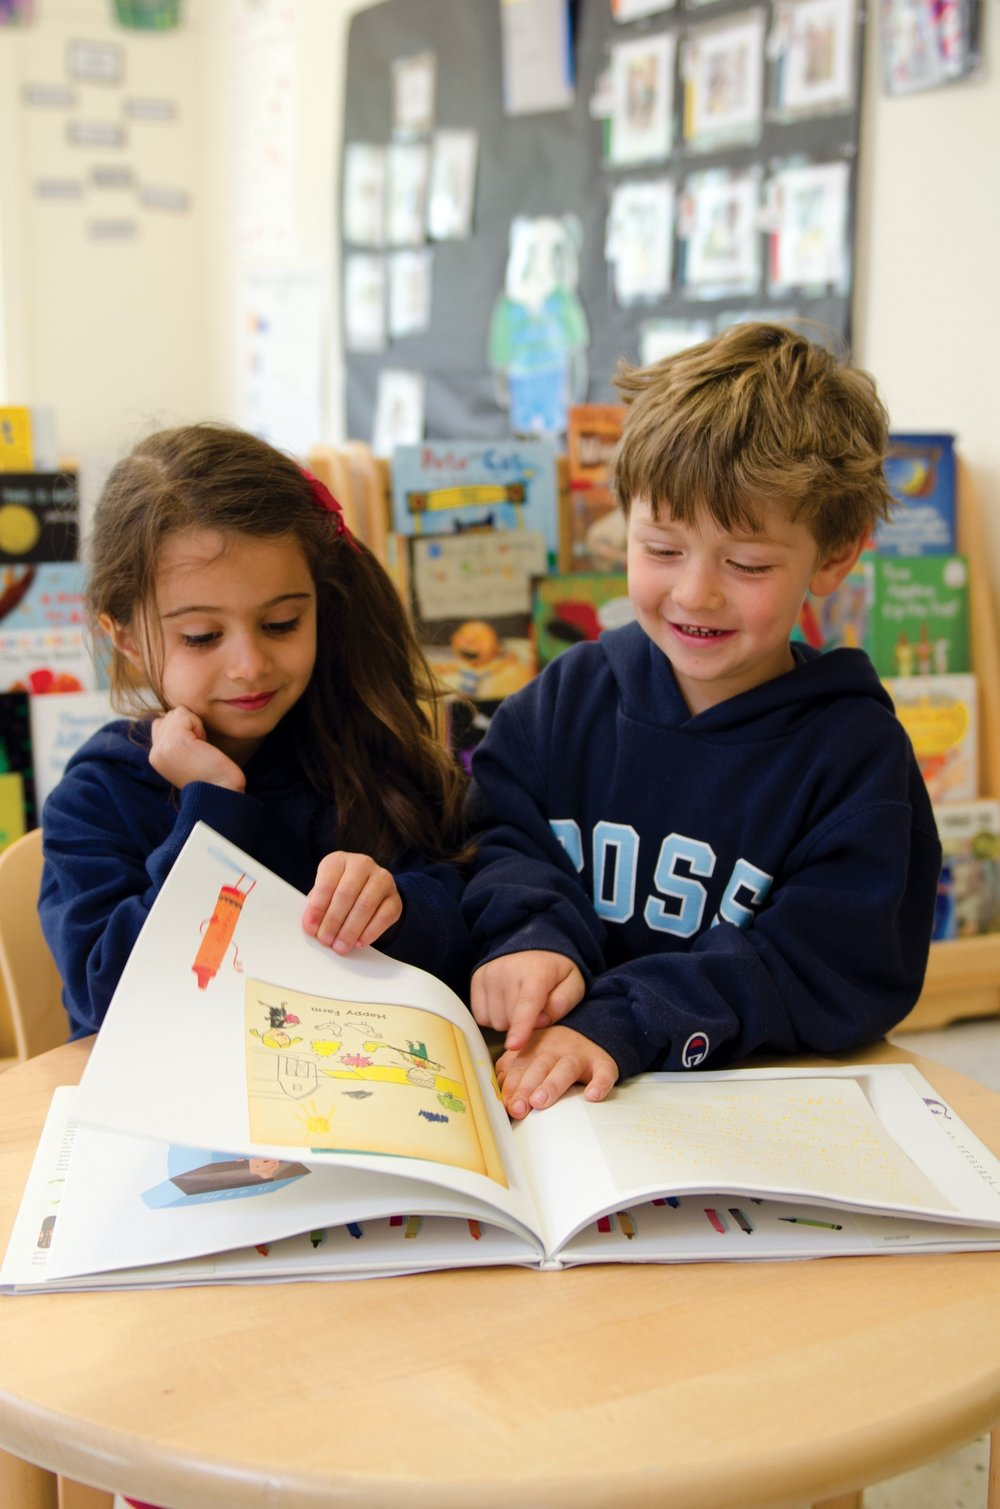 Ross Lower School students enjoying small group reading time.